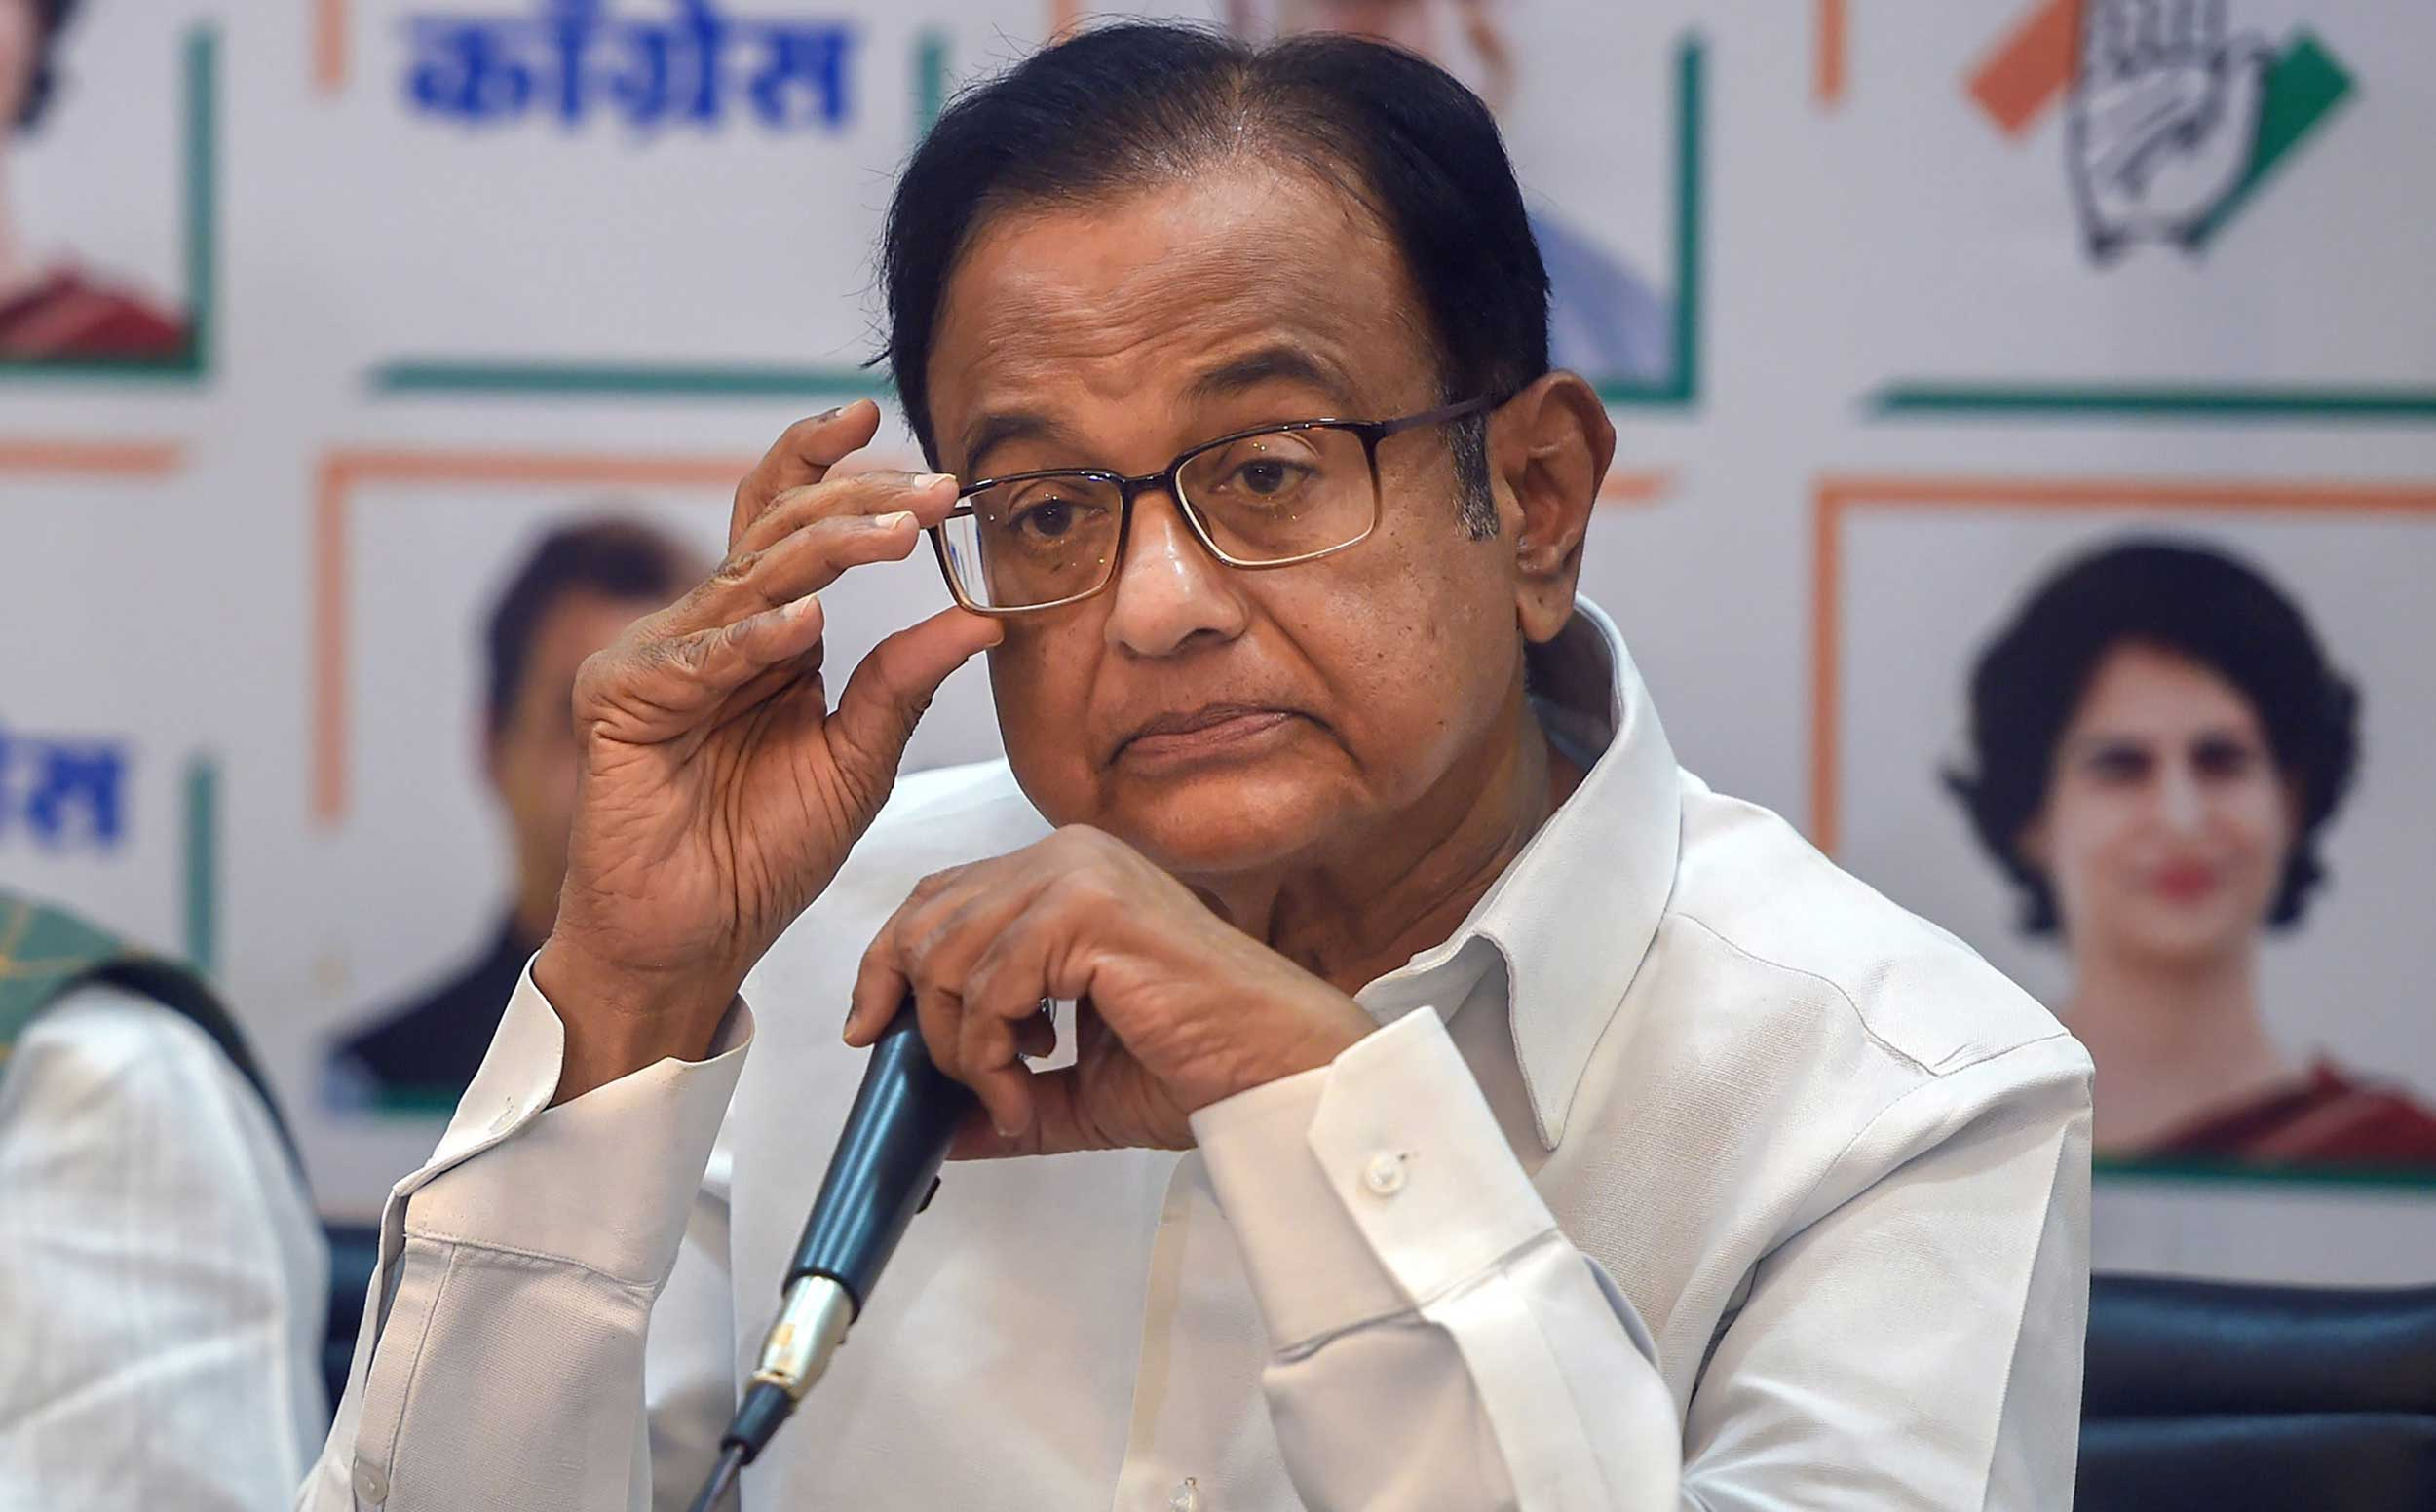 P. Chidambaram during a press conference in Mumbai on April 27, 2019.